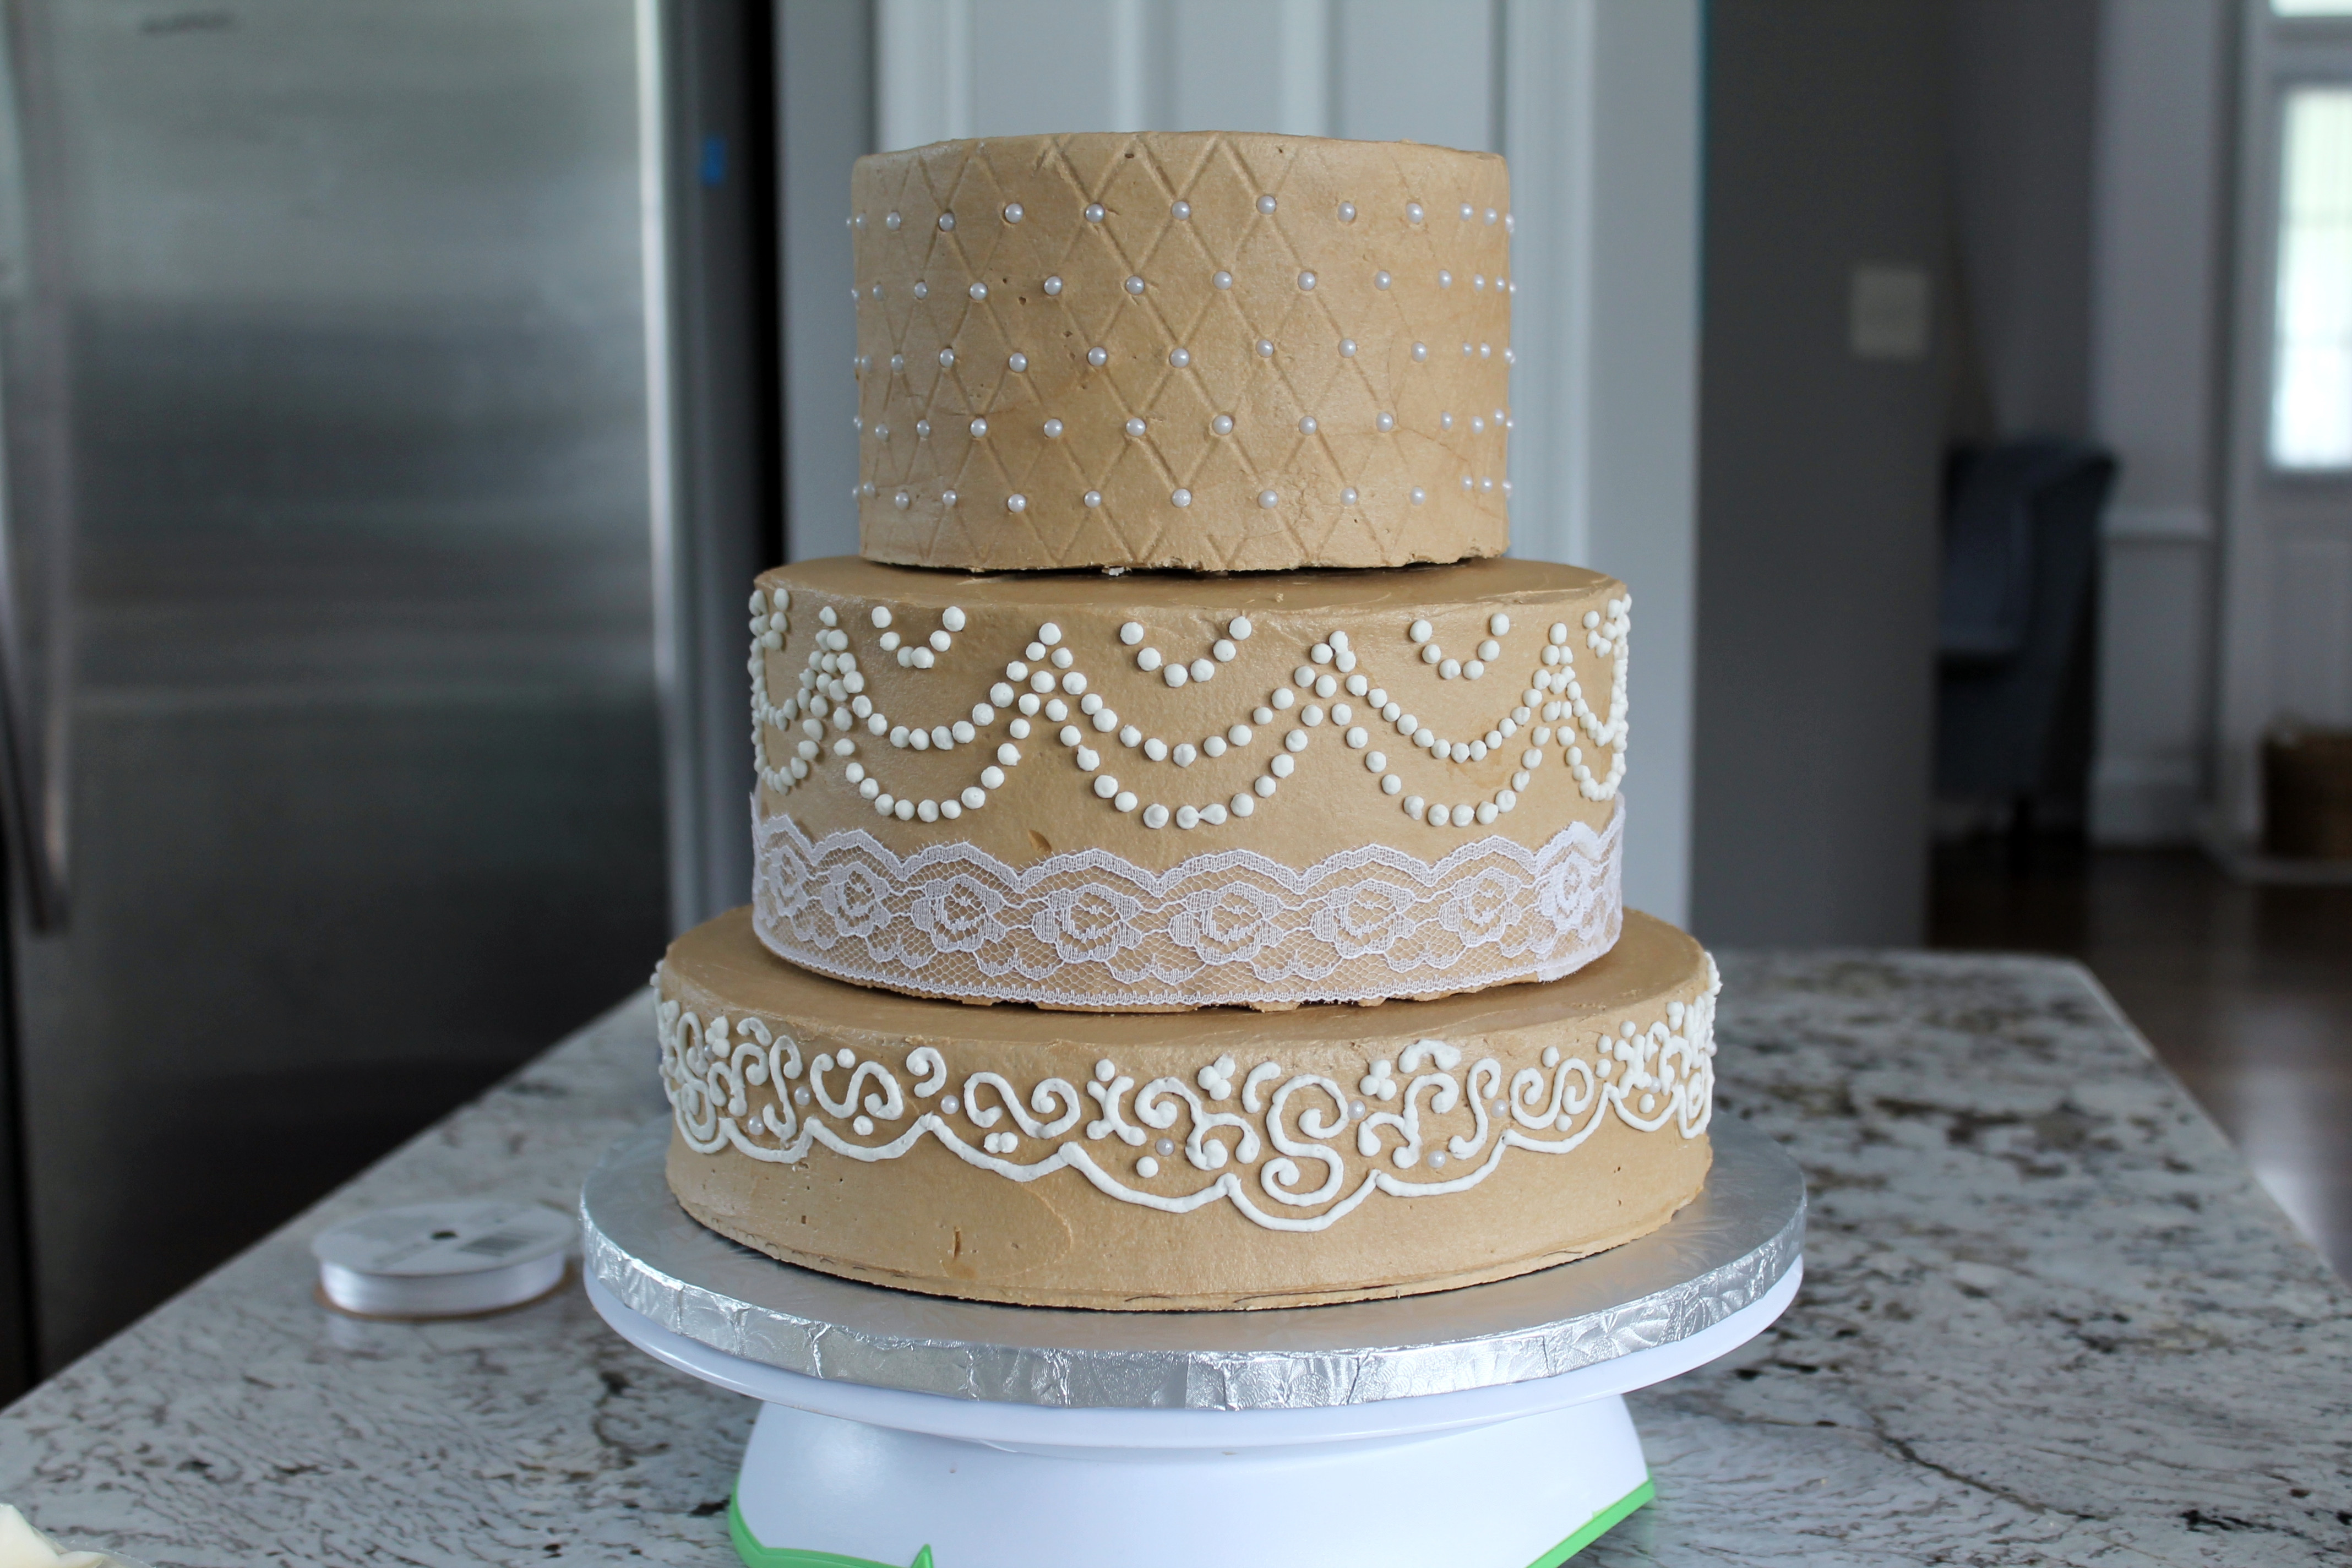 Transporting Wedding Cakes  How to Transport a Tiered Wedding Cake – Savored Grace